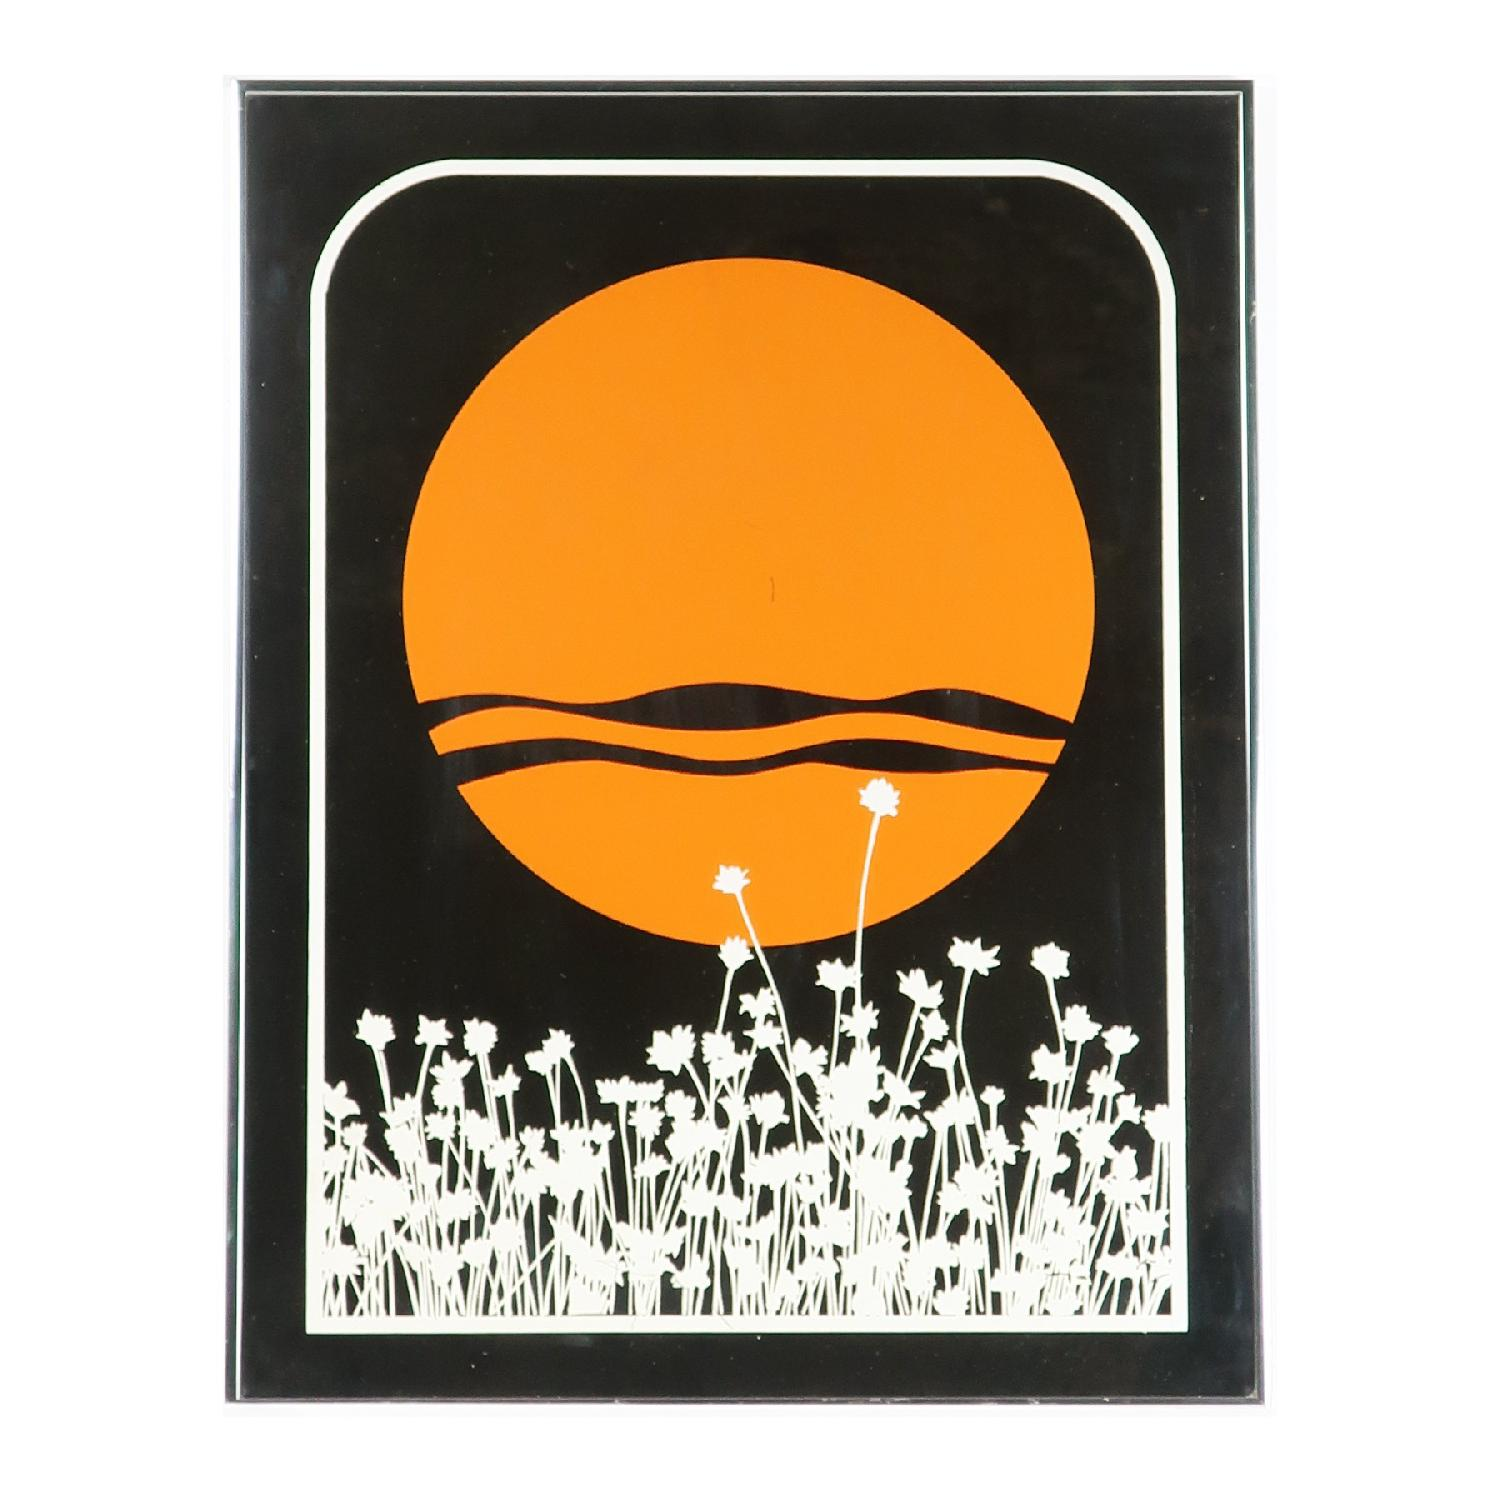 1970s Vintage Painted Mirror by Jim Rosloff for Academy Arts